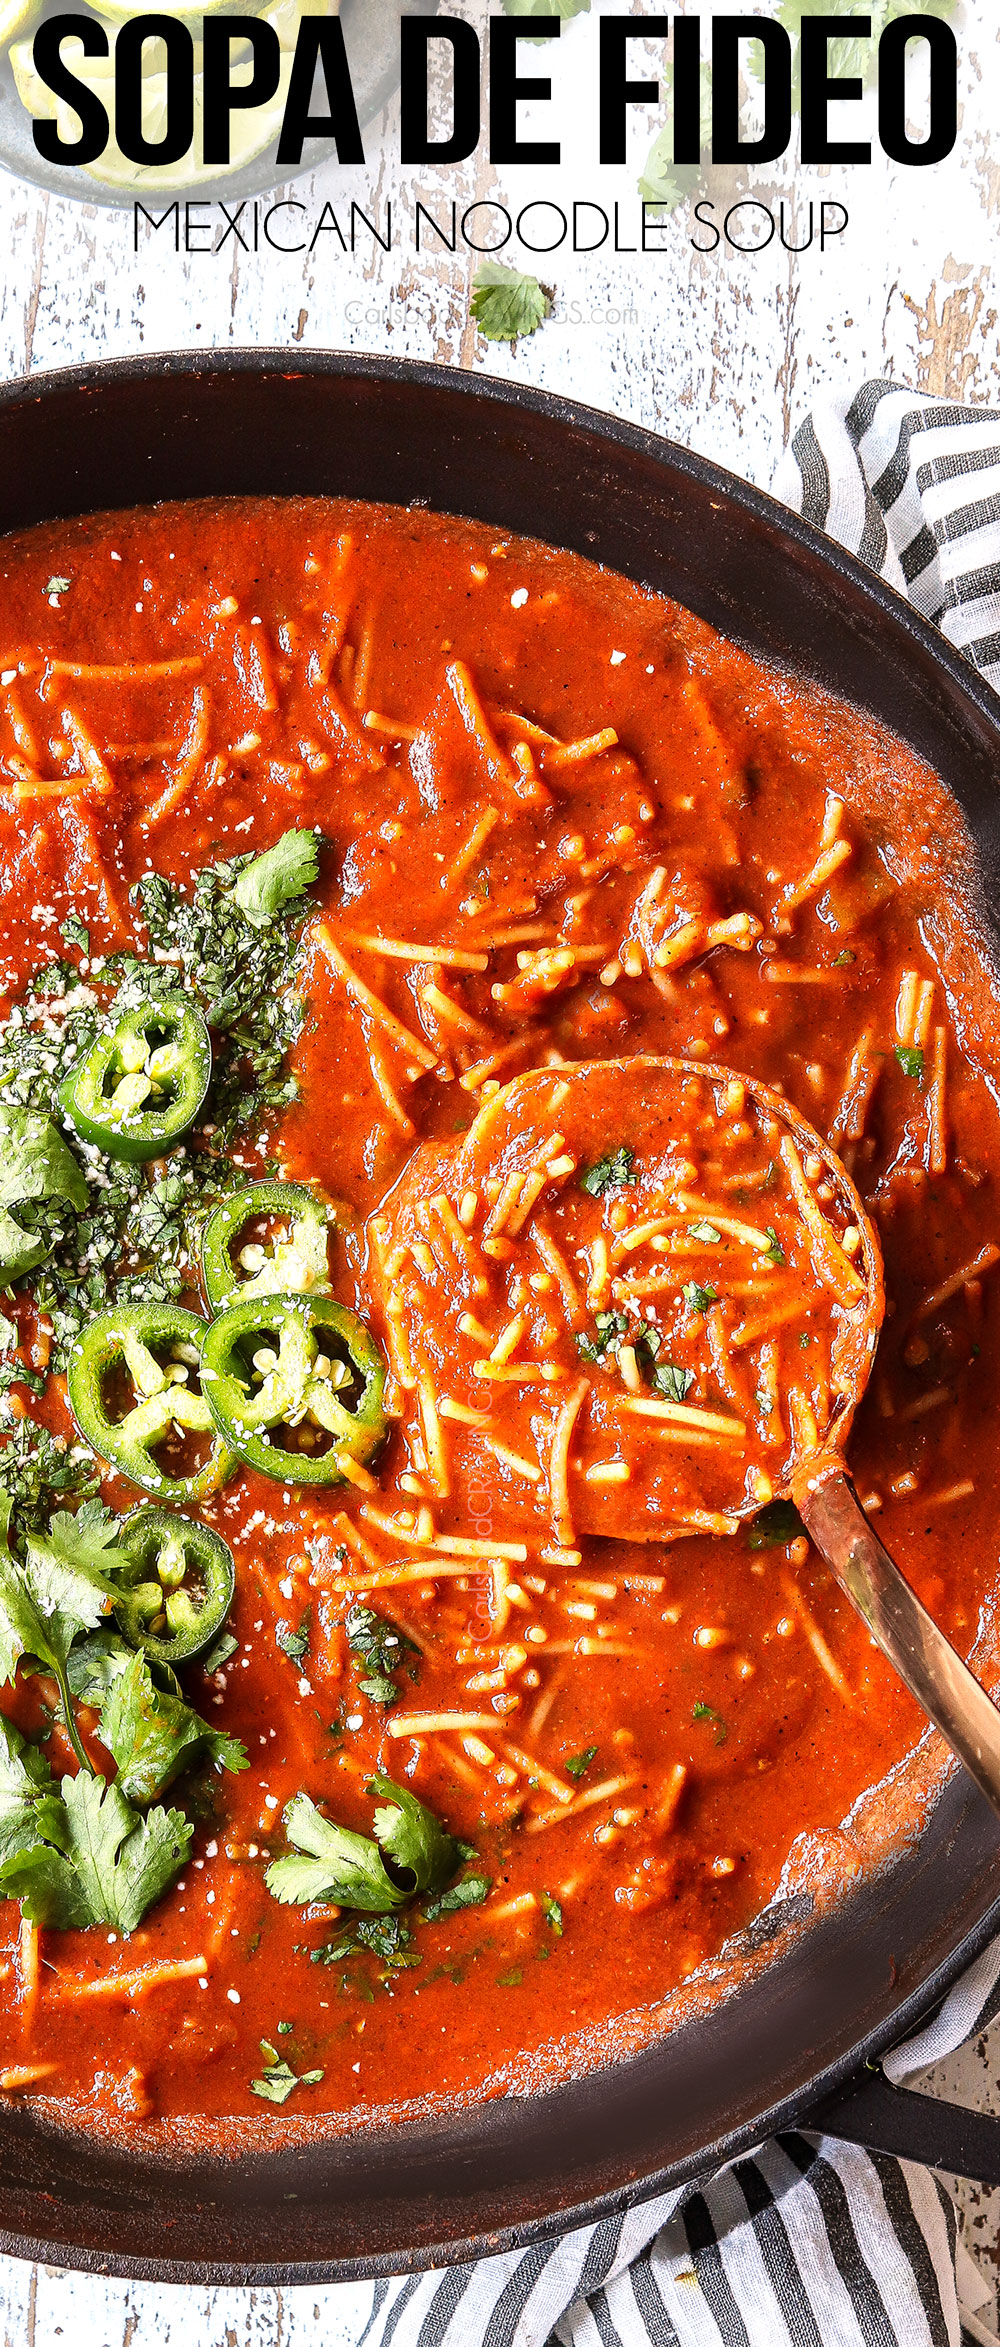 top view of sopa de fideo with a ladle